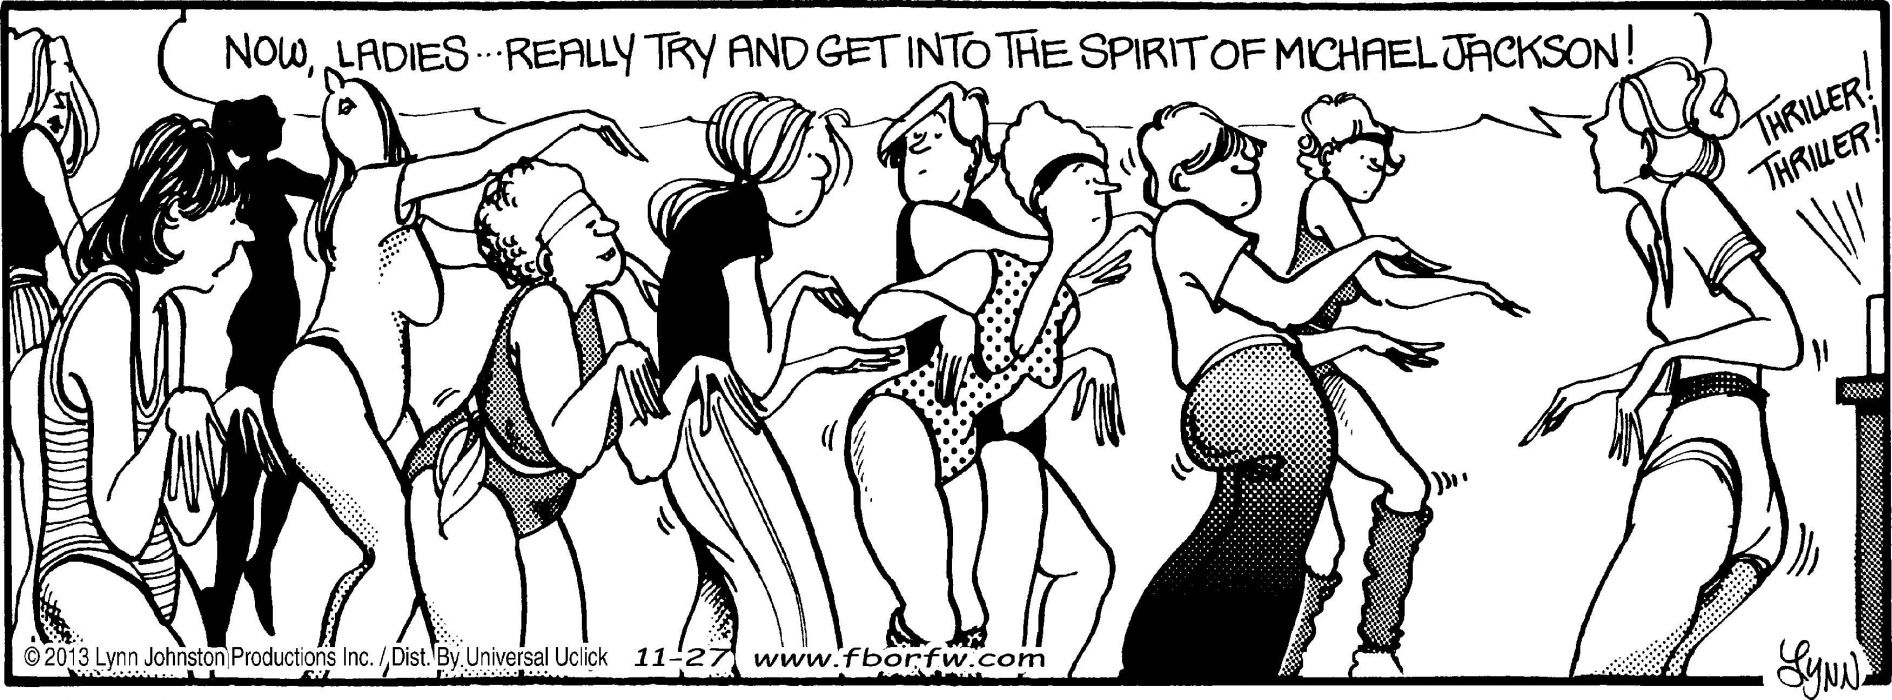 FOR-BETTER-OR-WORSE comicstrip comics funny humor better worse (58) wallpaper